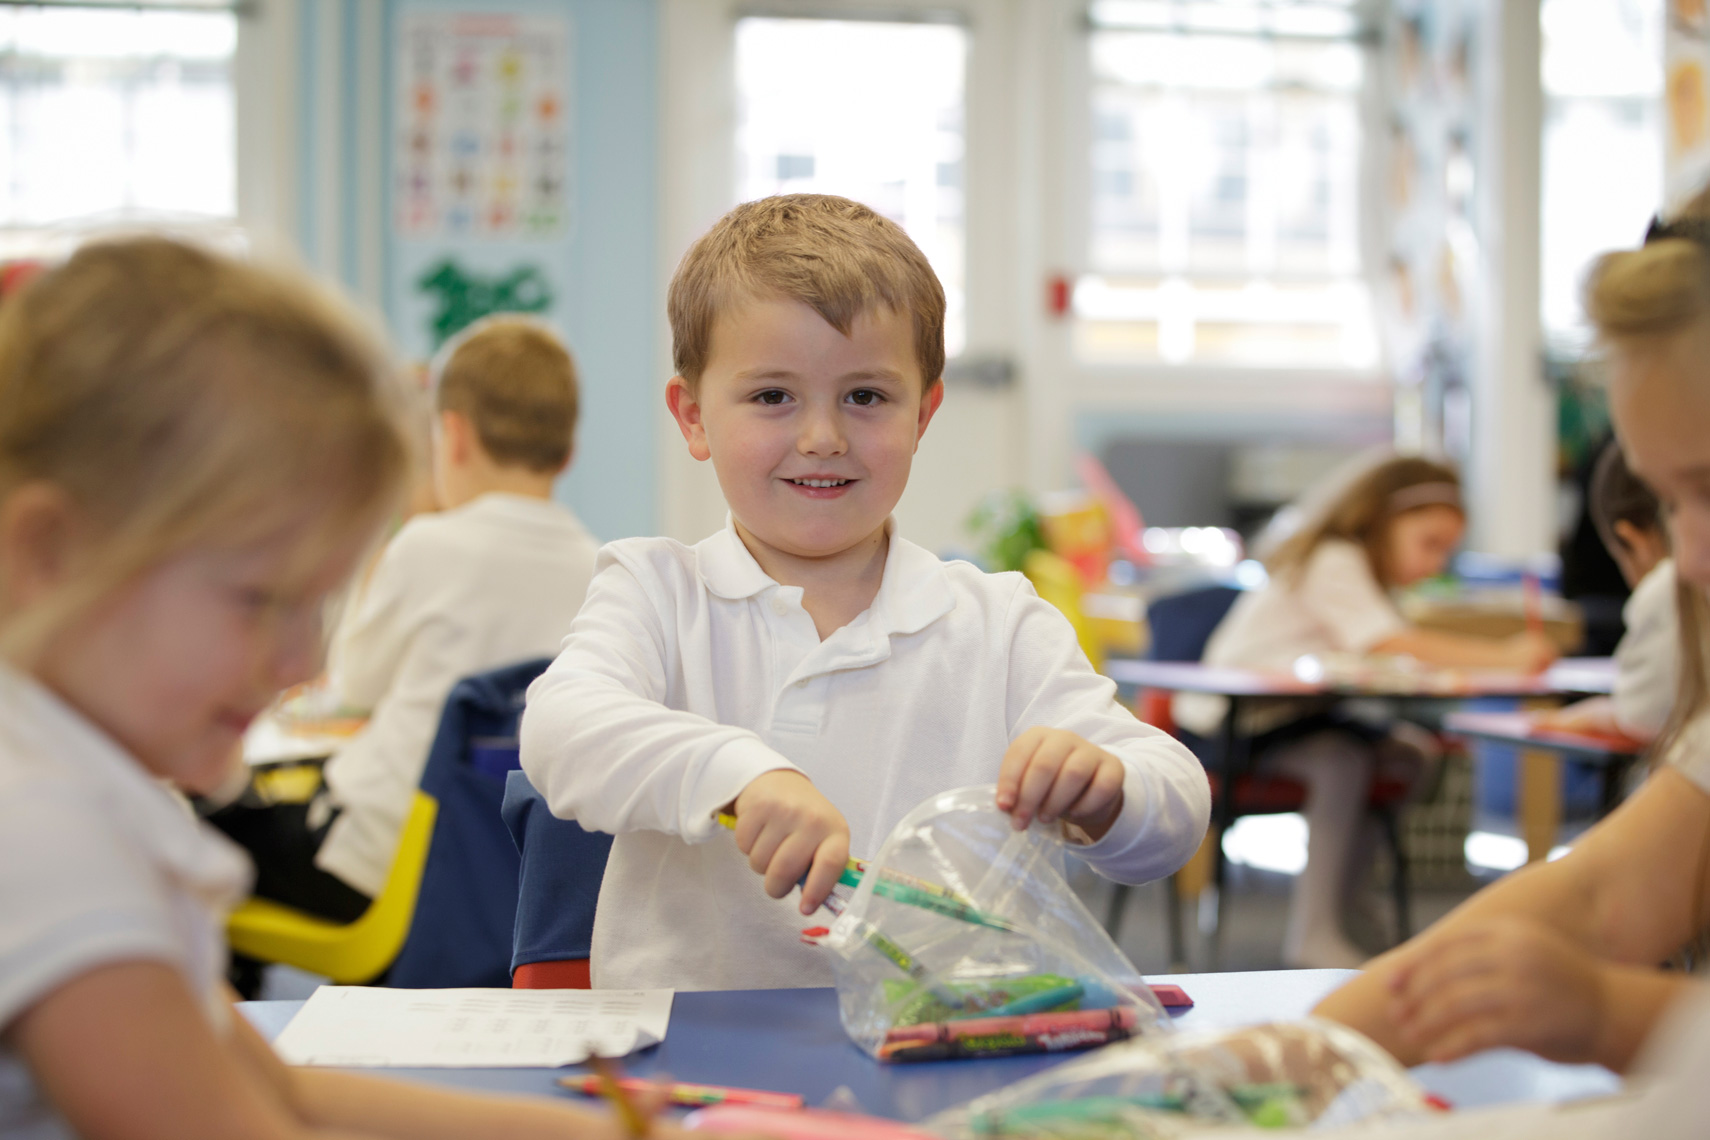 Kindergarten boy in white shirt with crayons in school.